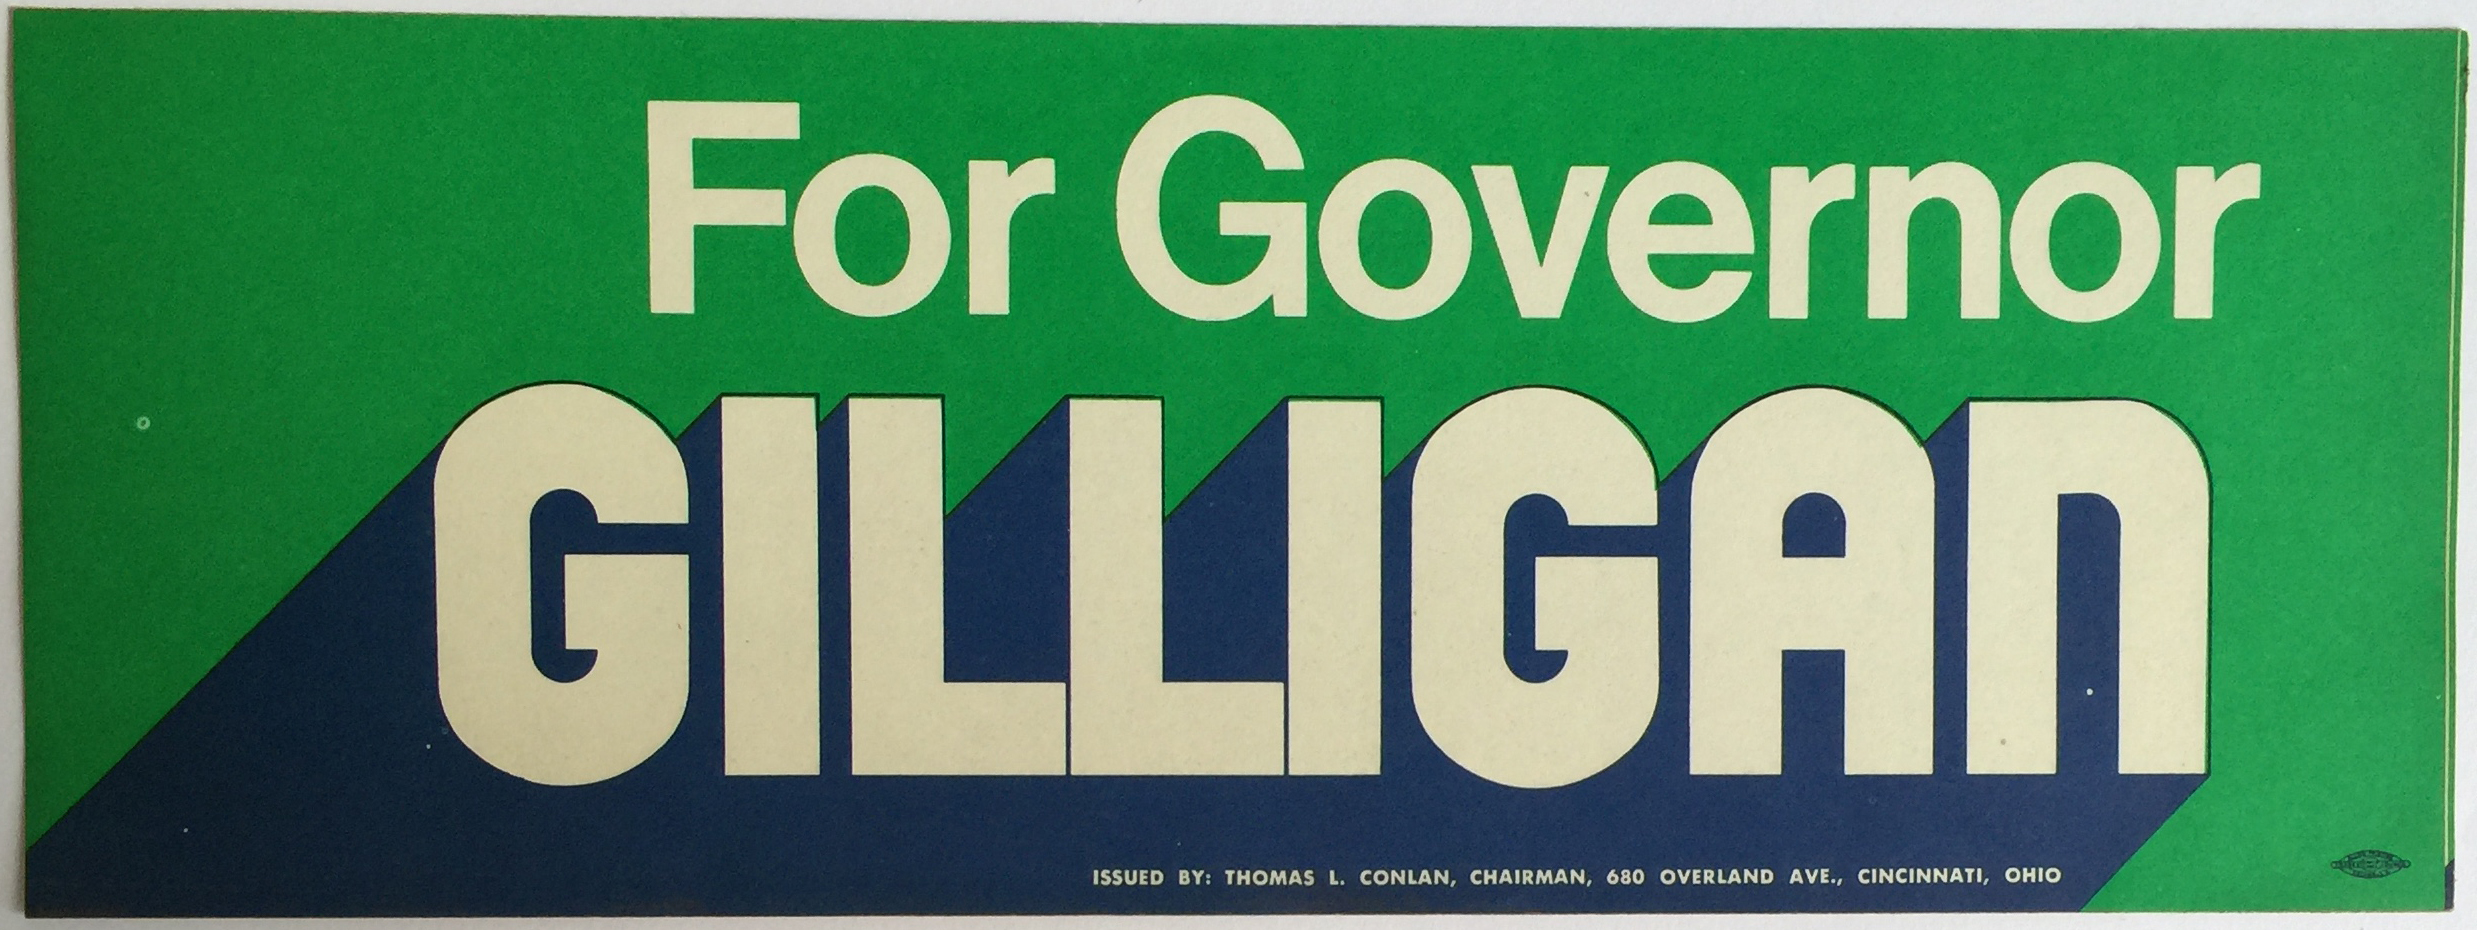 Sticker-gov1970 GILLIGAN 1.jpg